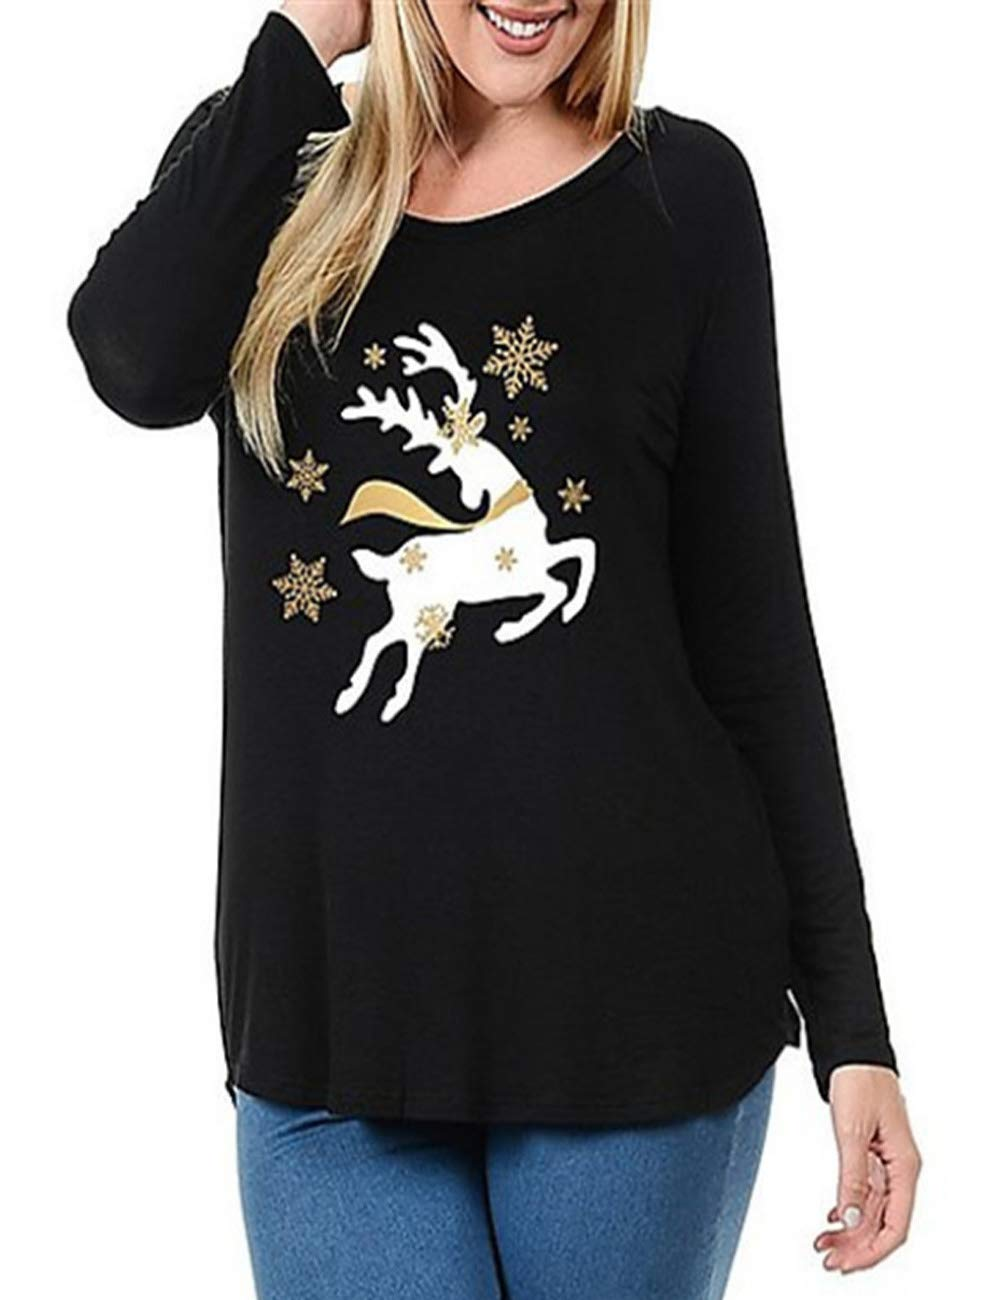 Kancystore Women Plus Size Tunics Christmas Reindeer Blouses With